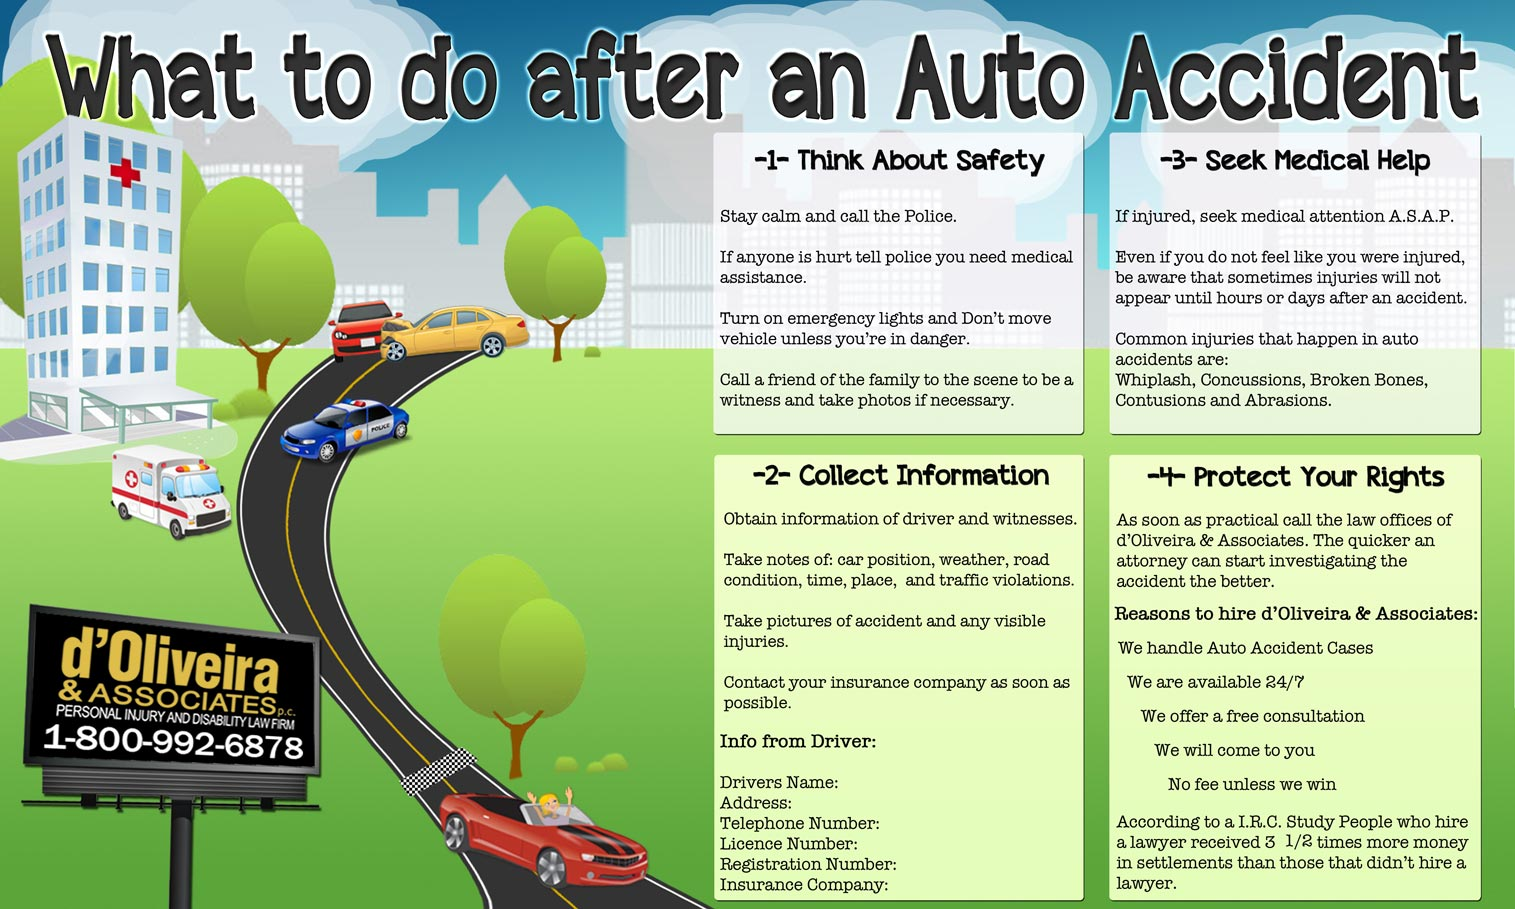 after-an-auto-accident-lawyer-infographic